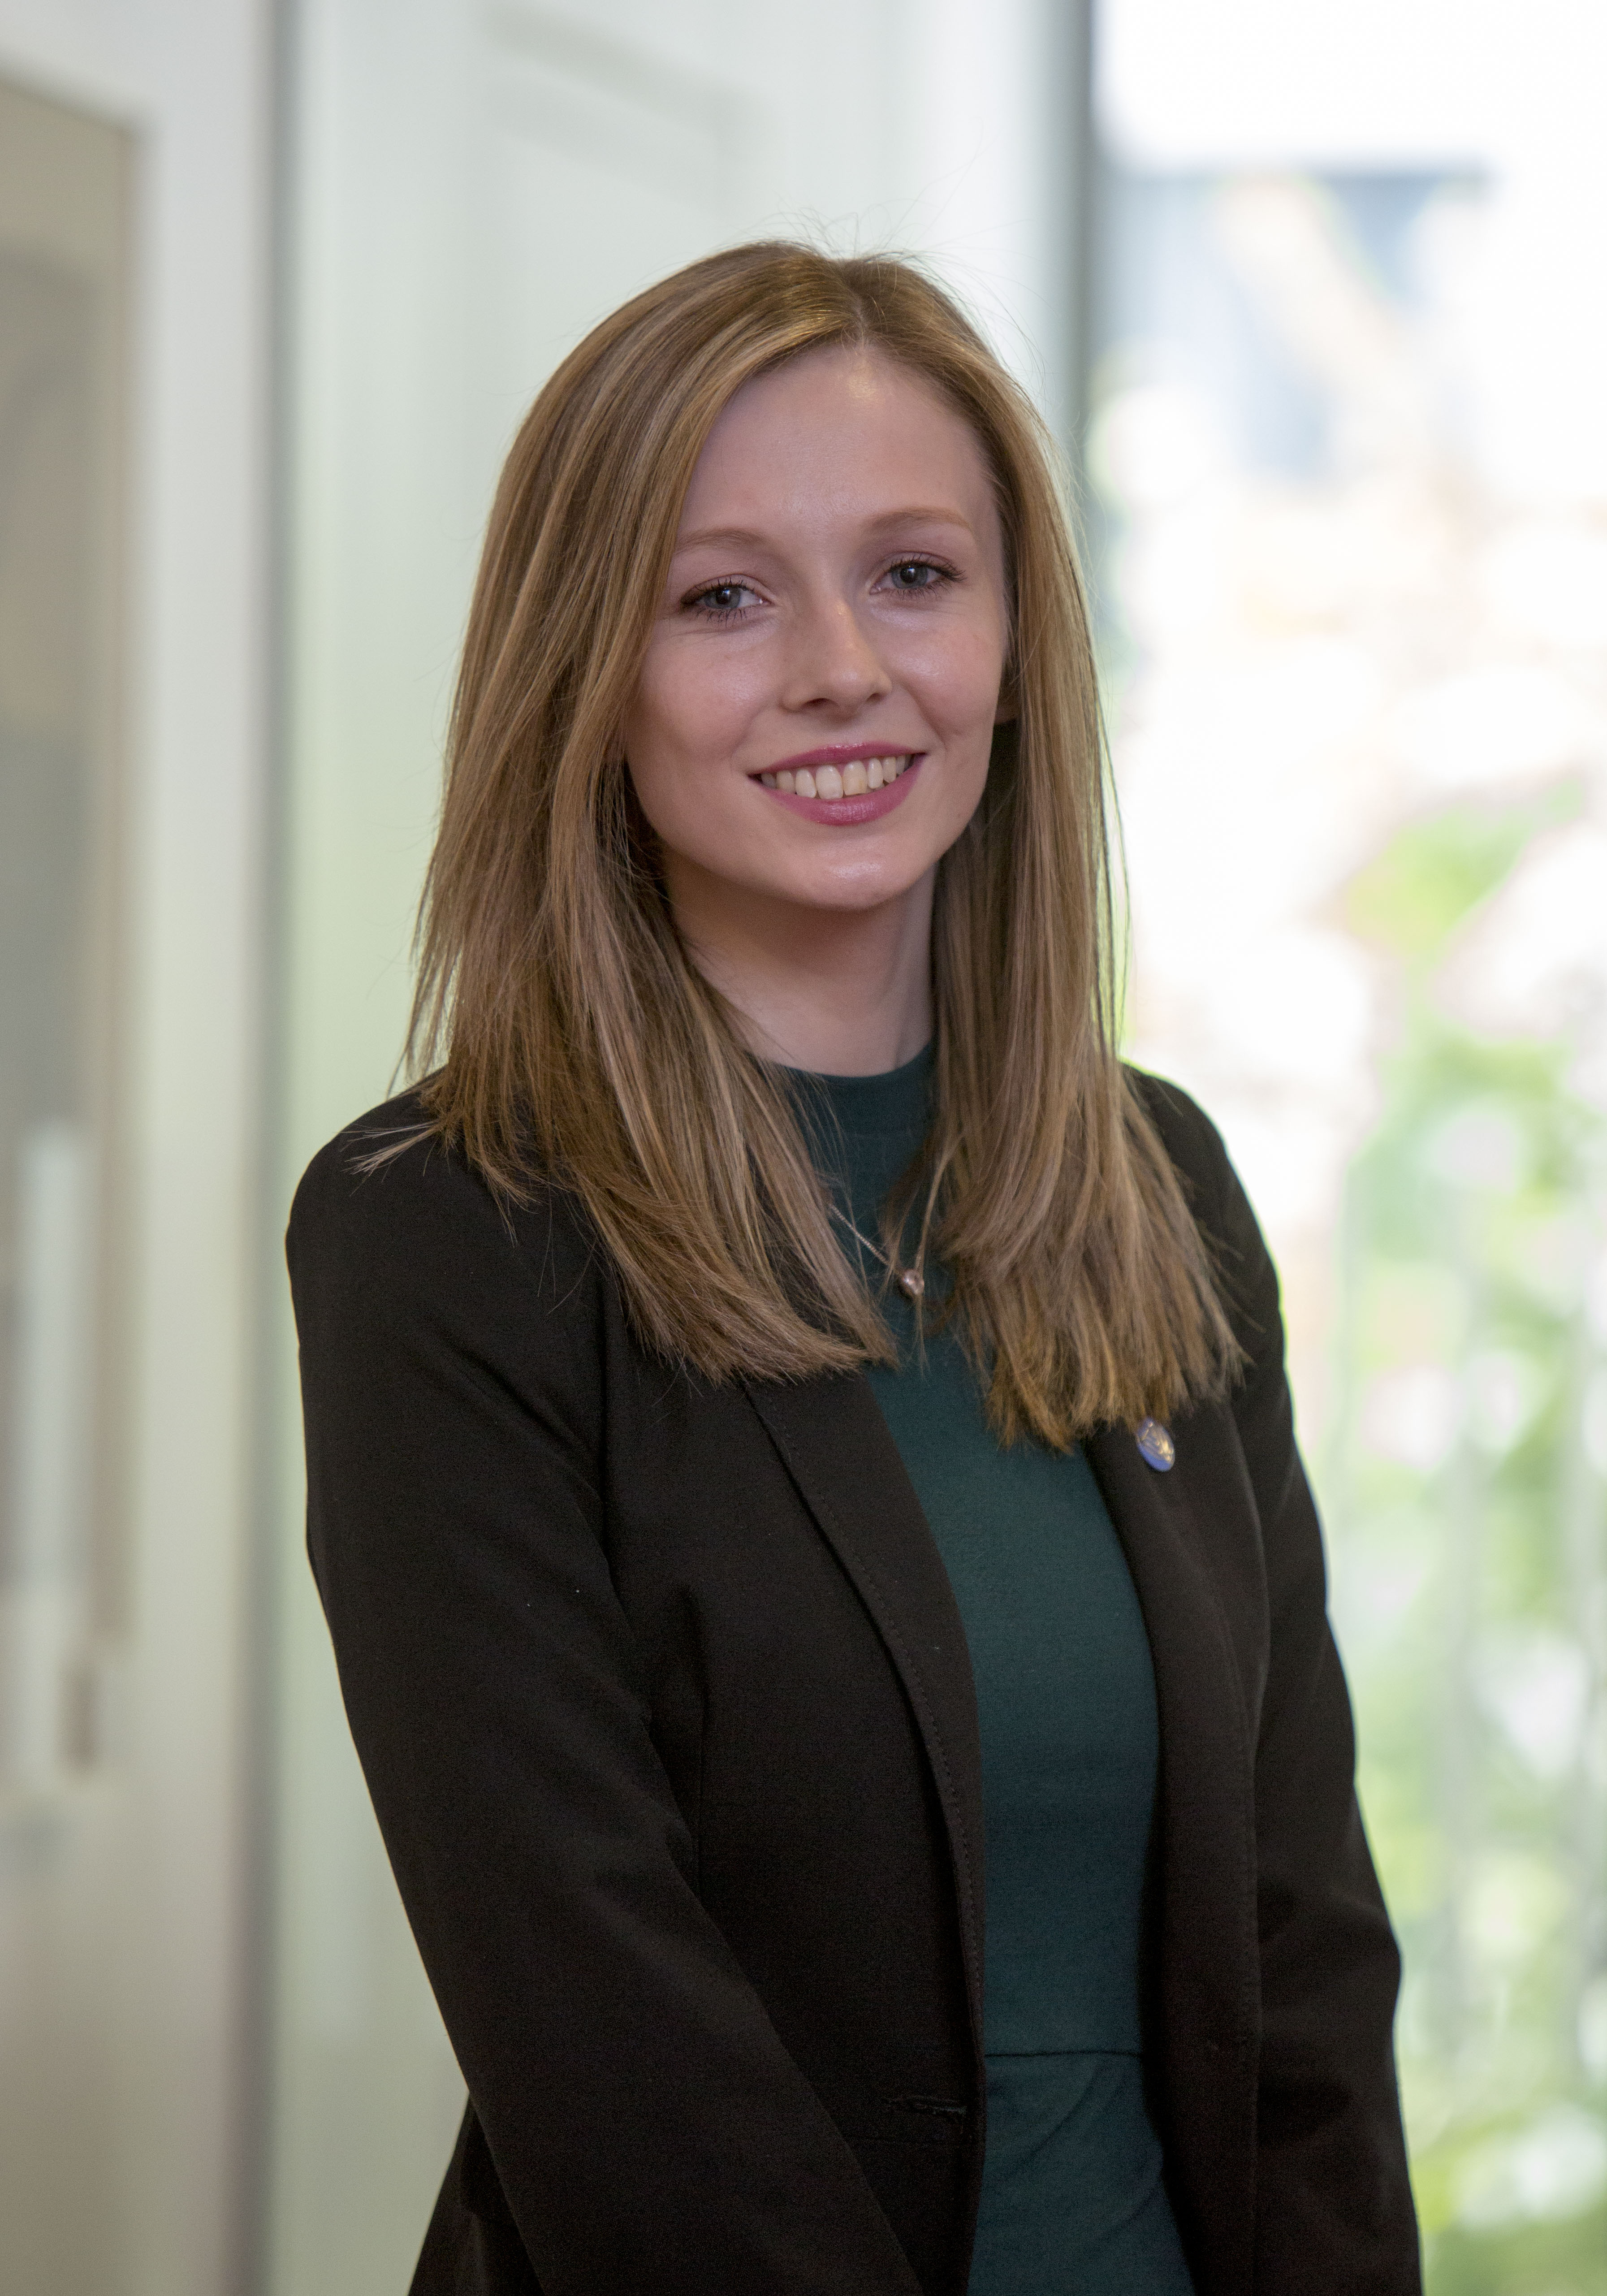 WIT BA (Hons) in Accounting graduate, Olivia McDonald has been announced as winner of the Institute's recent Young Chartered Star competition